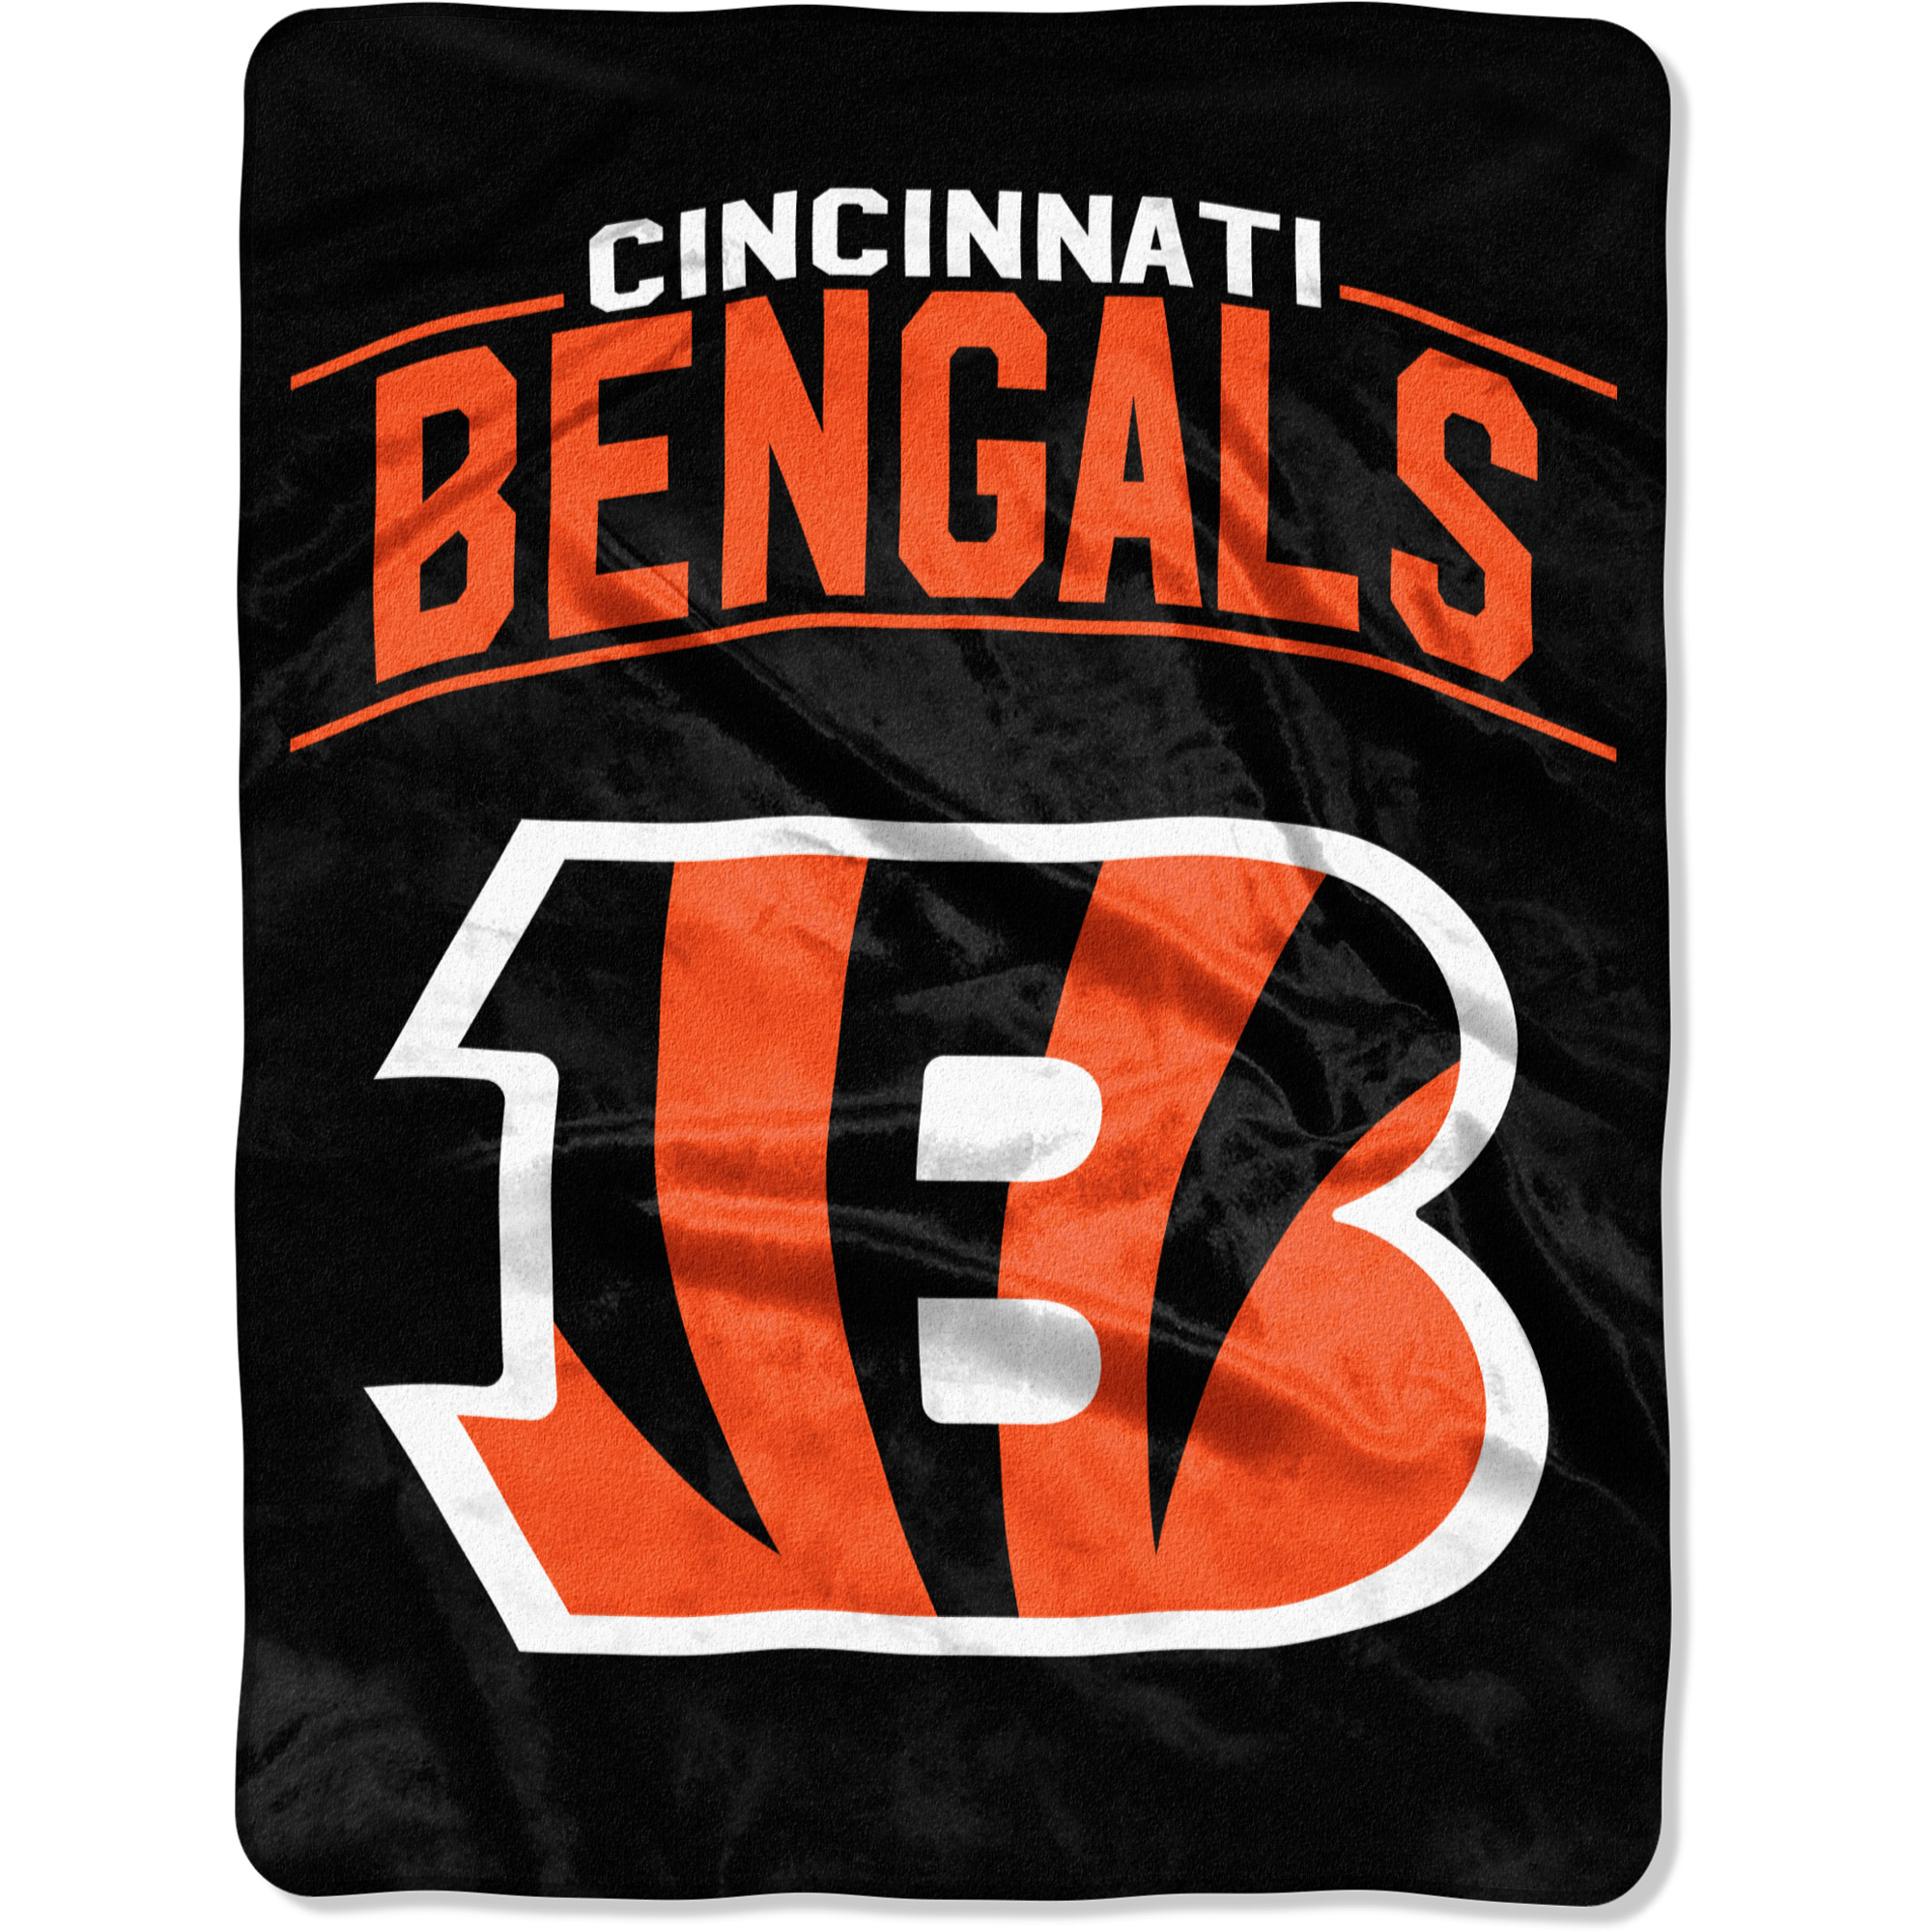 "Cincinnati Bengals The Northwest Company Strong Side 60"" x 80"" Raschel Throw Blanket - No Size"